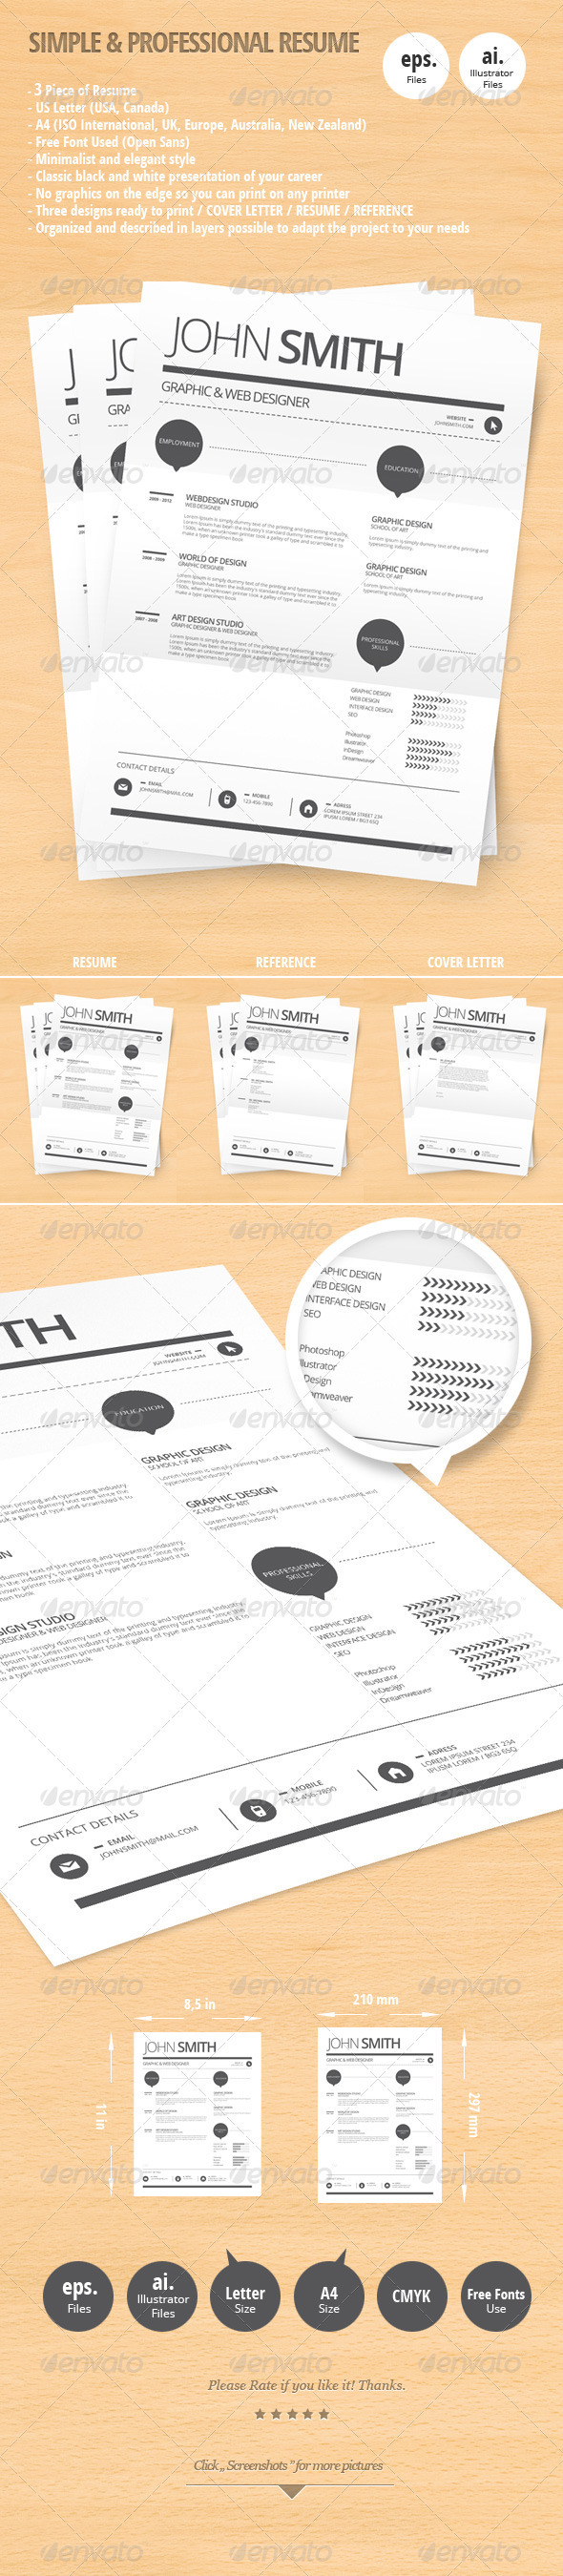 GraphicRiver Simple & Professional Resume 2483530